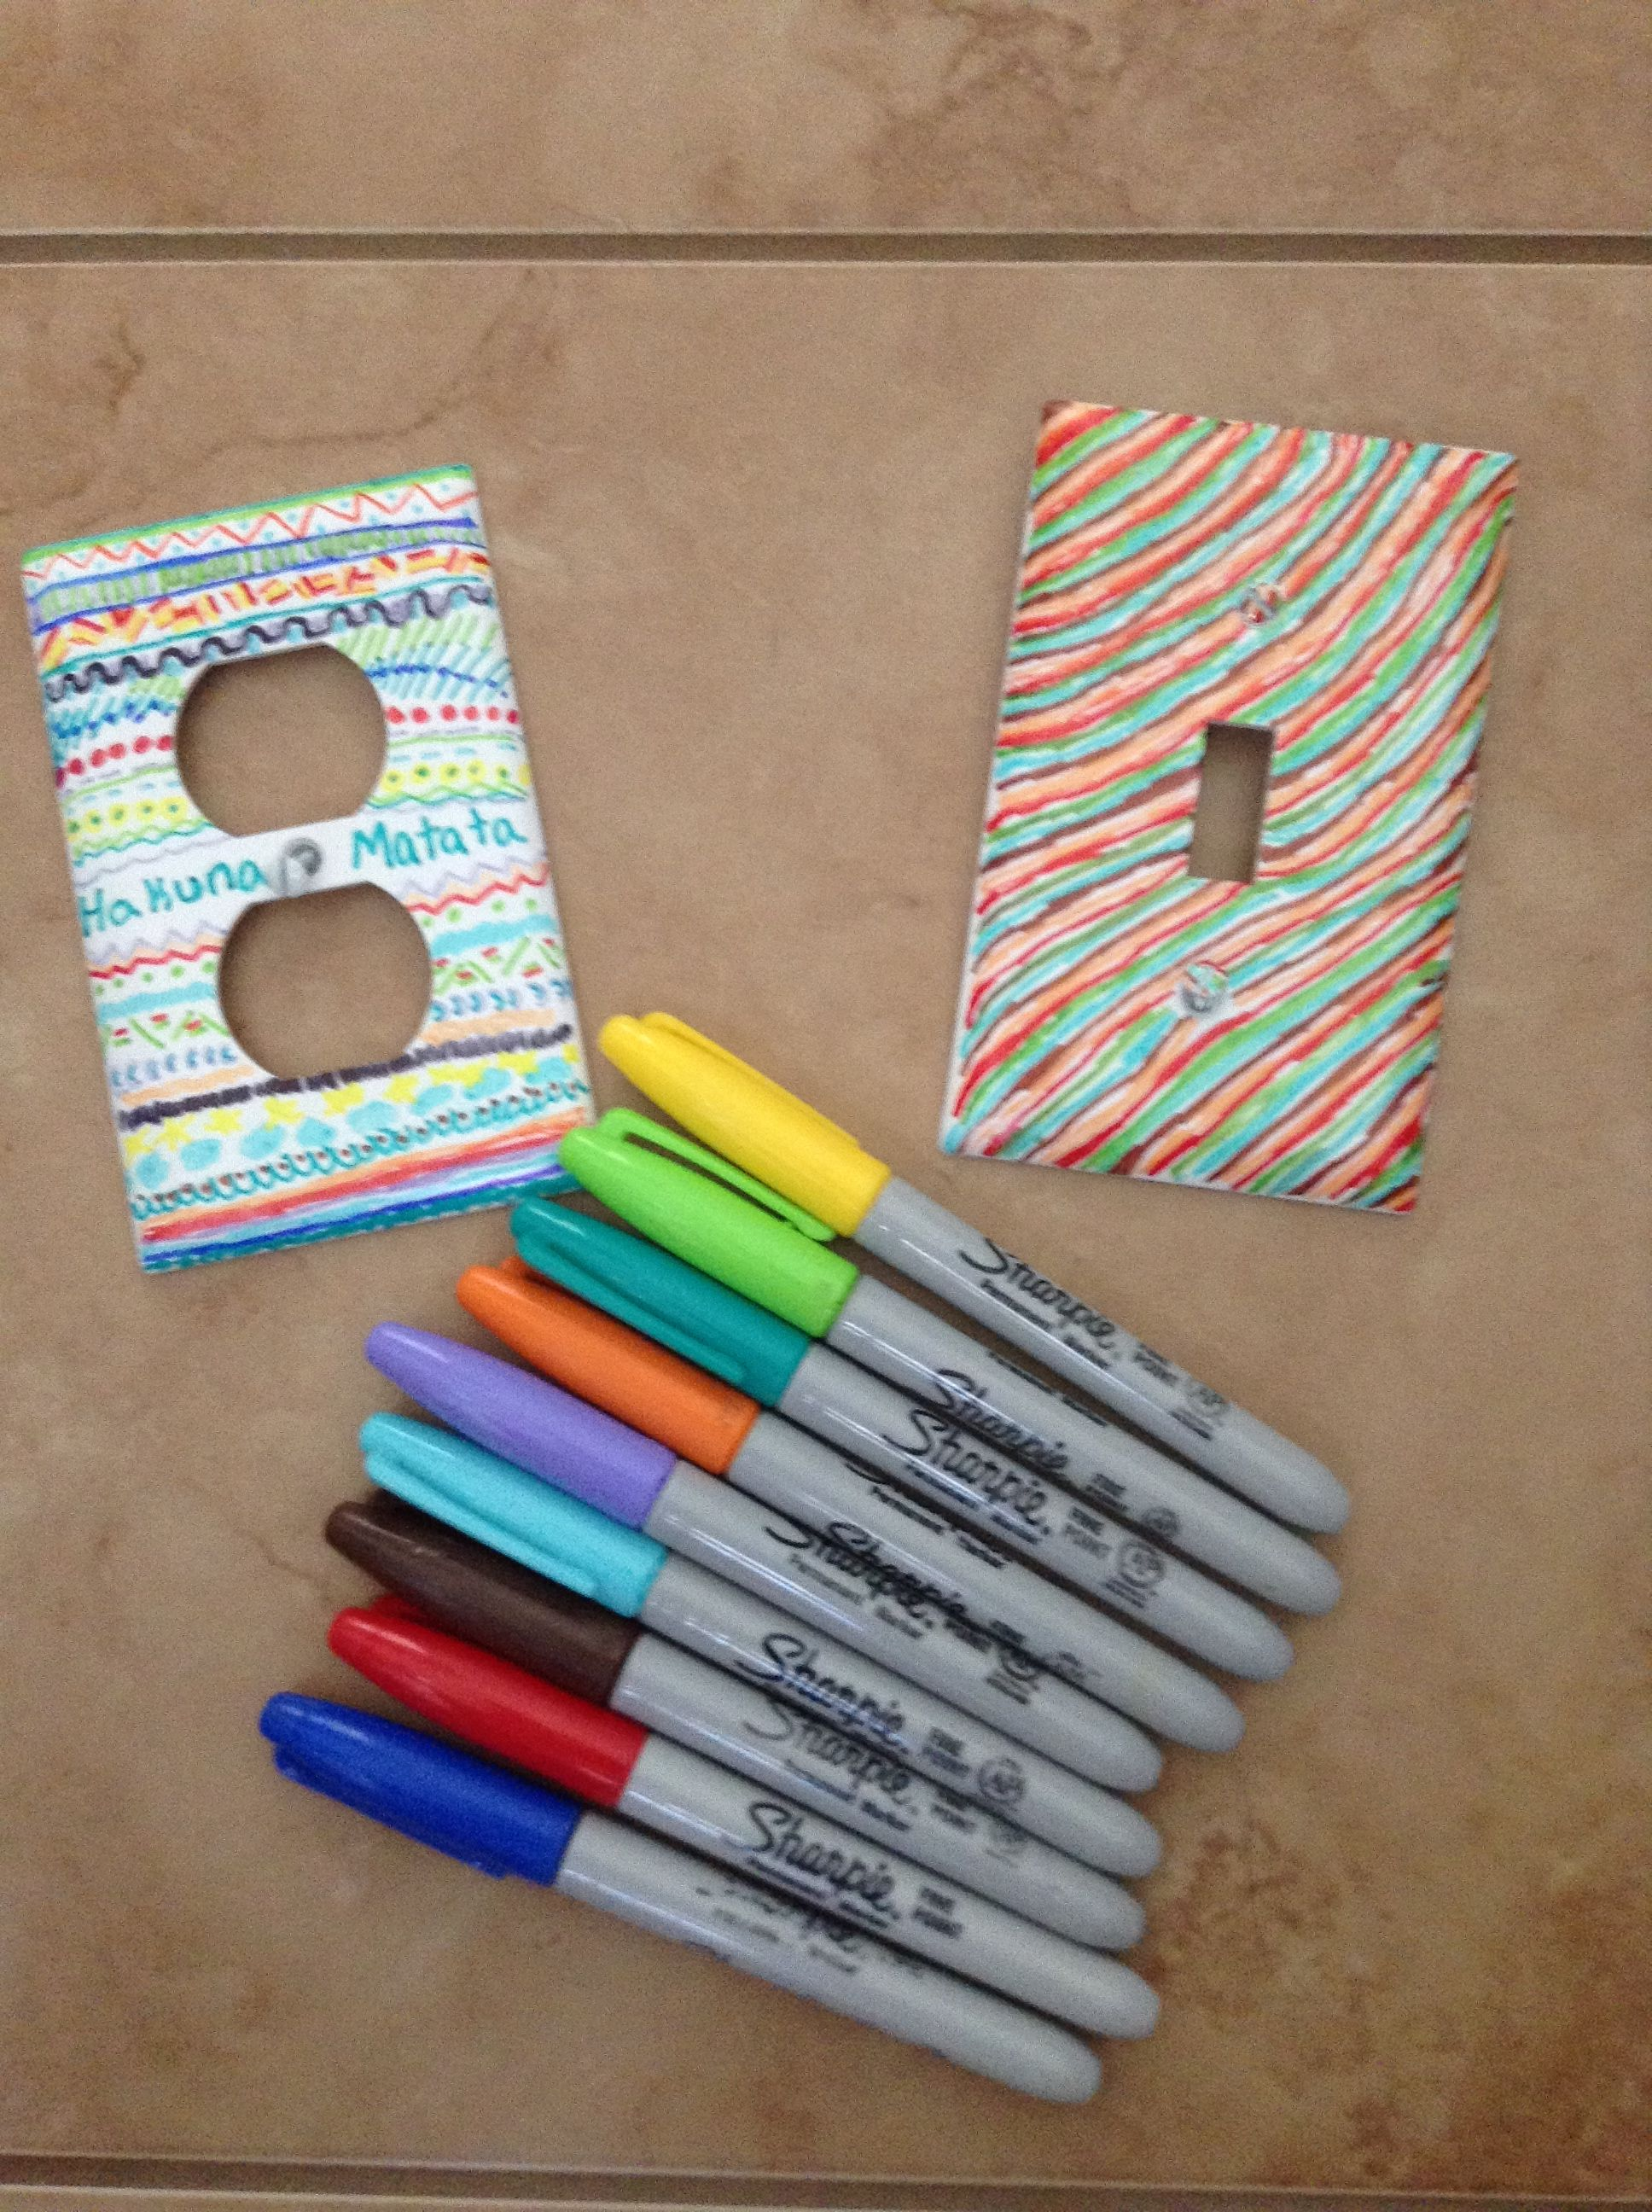 Diy Outlet Covers Sharpie On Plain Outlets 20 Cents At Home Depot